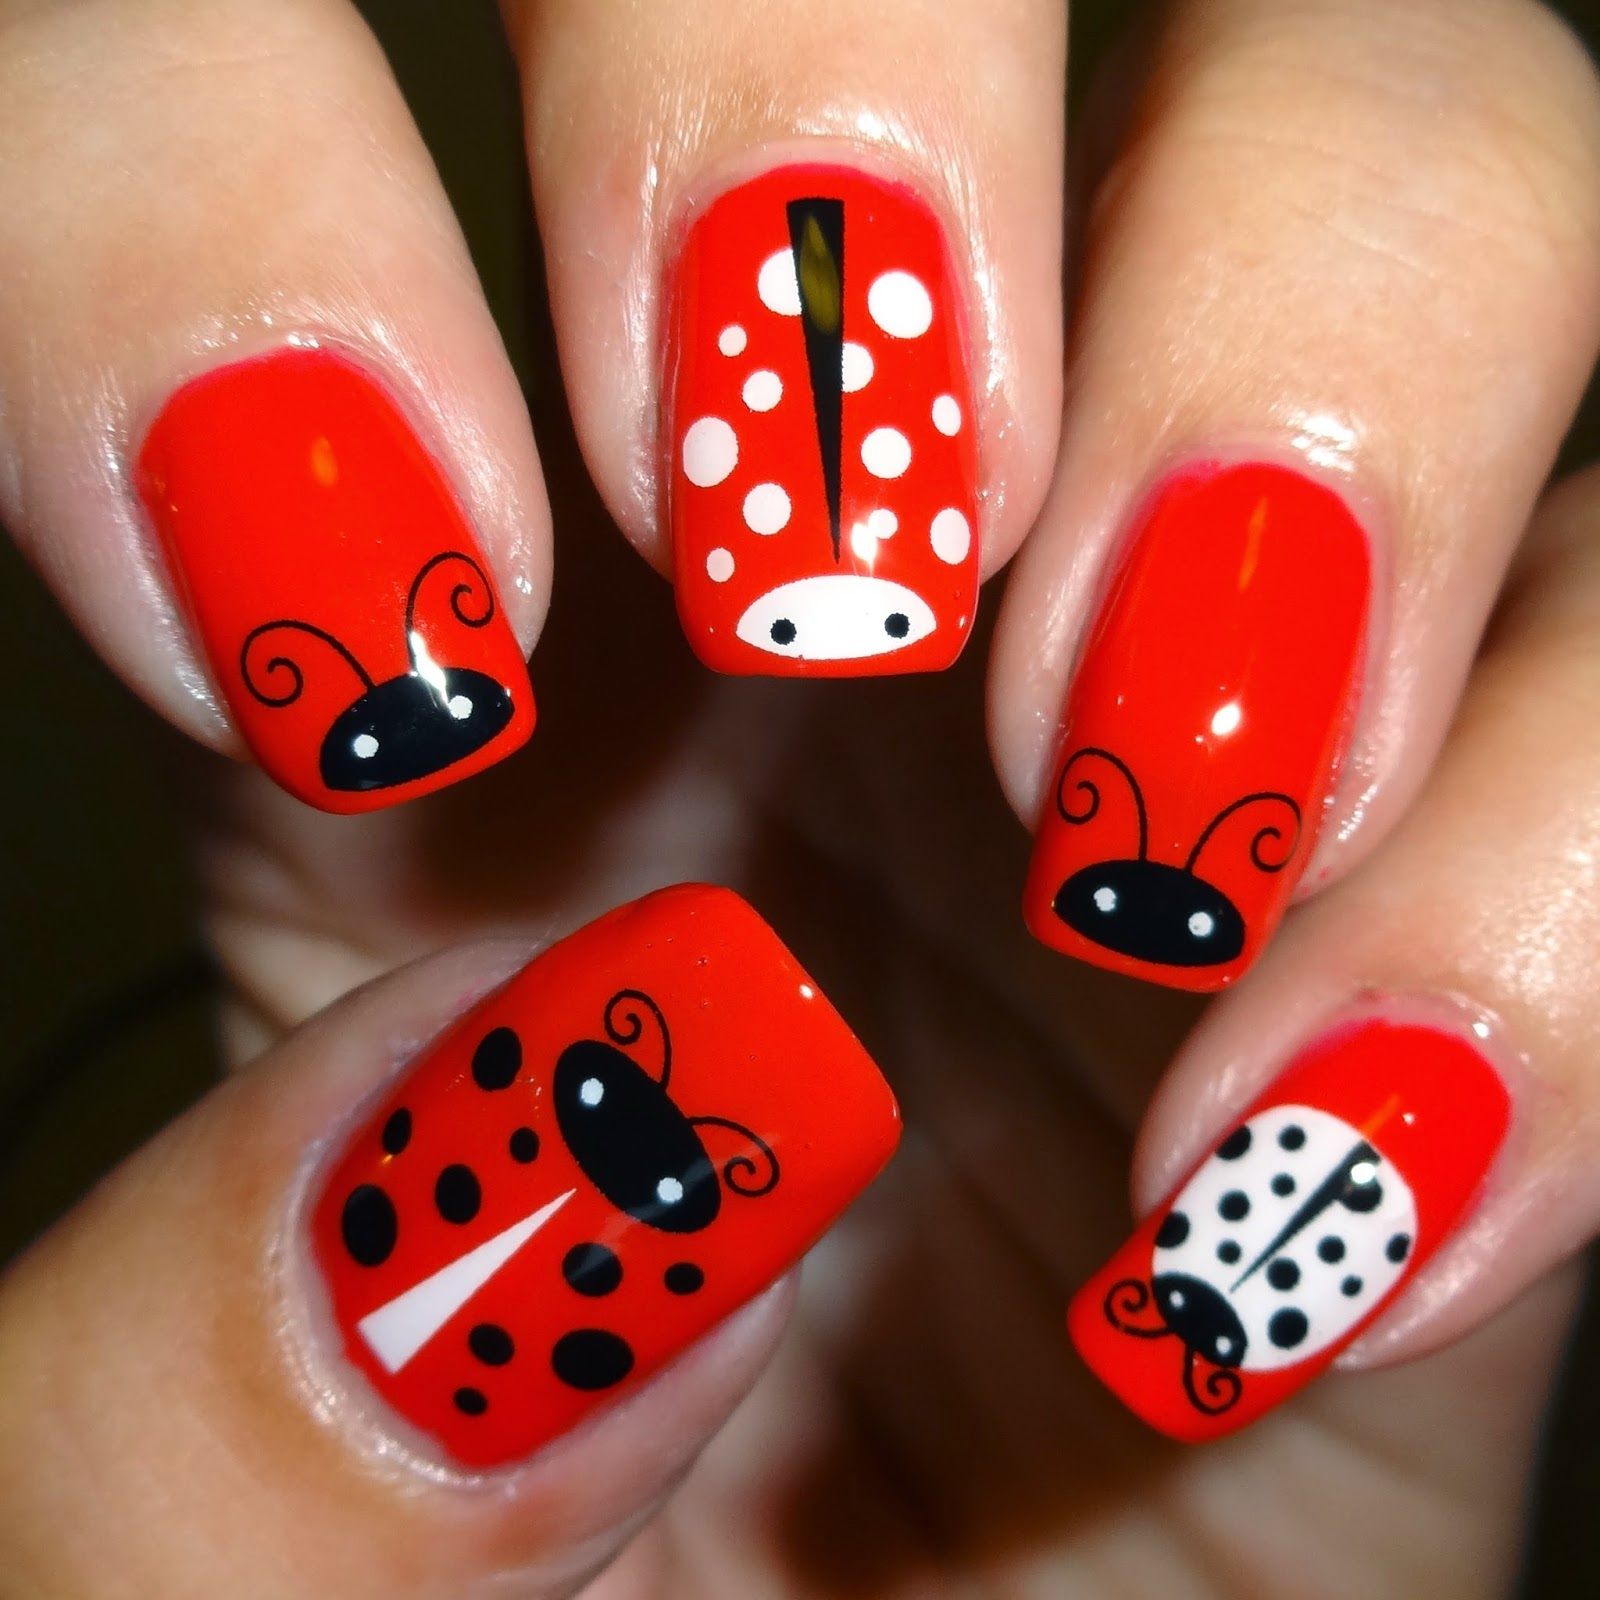 Wendy 39 s delights sparkly nails ladybug water decals - Ladybug watering can ...